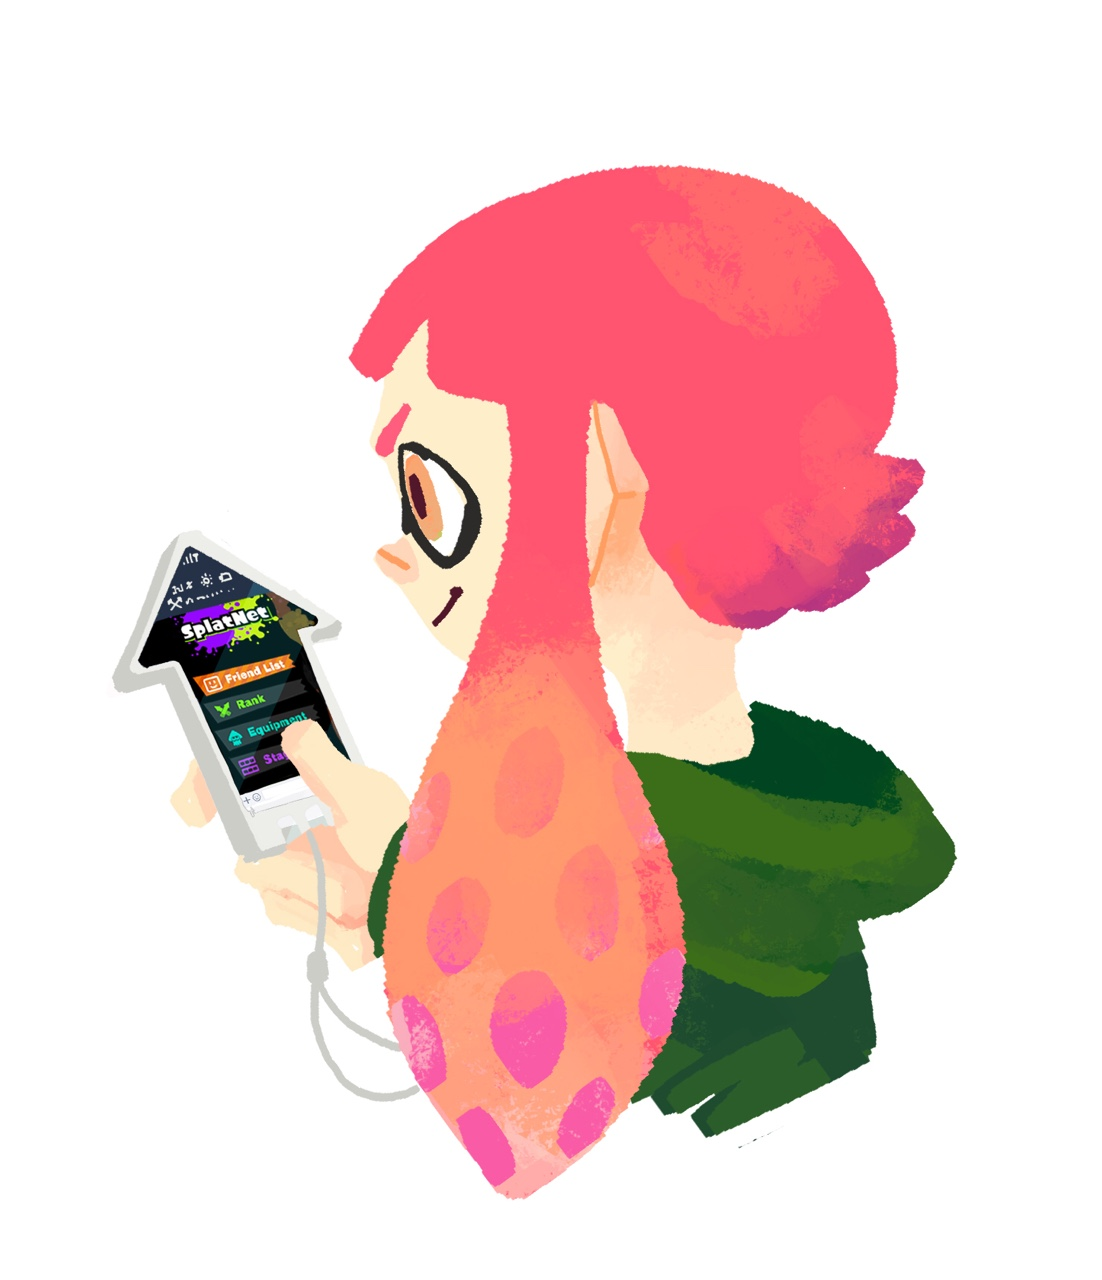 Splatoon Producer Teases The Possibility Of ASequel